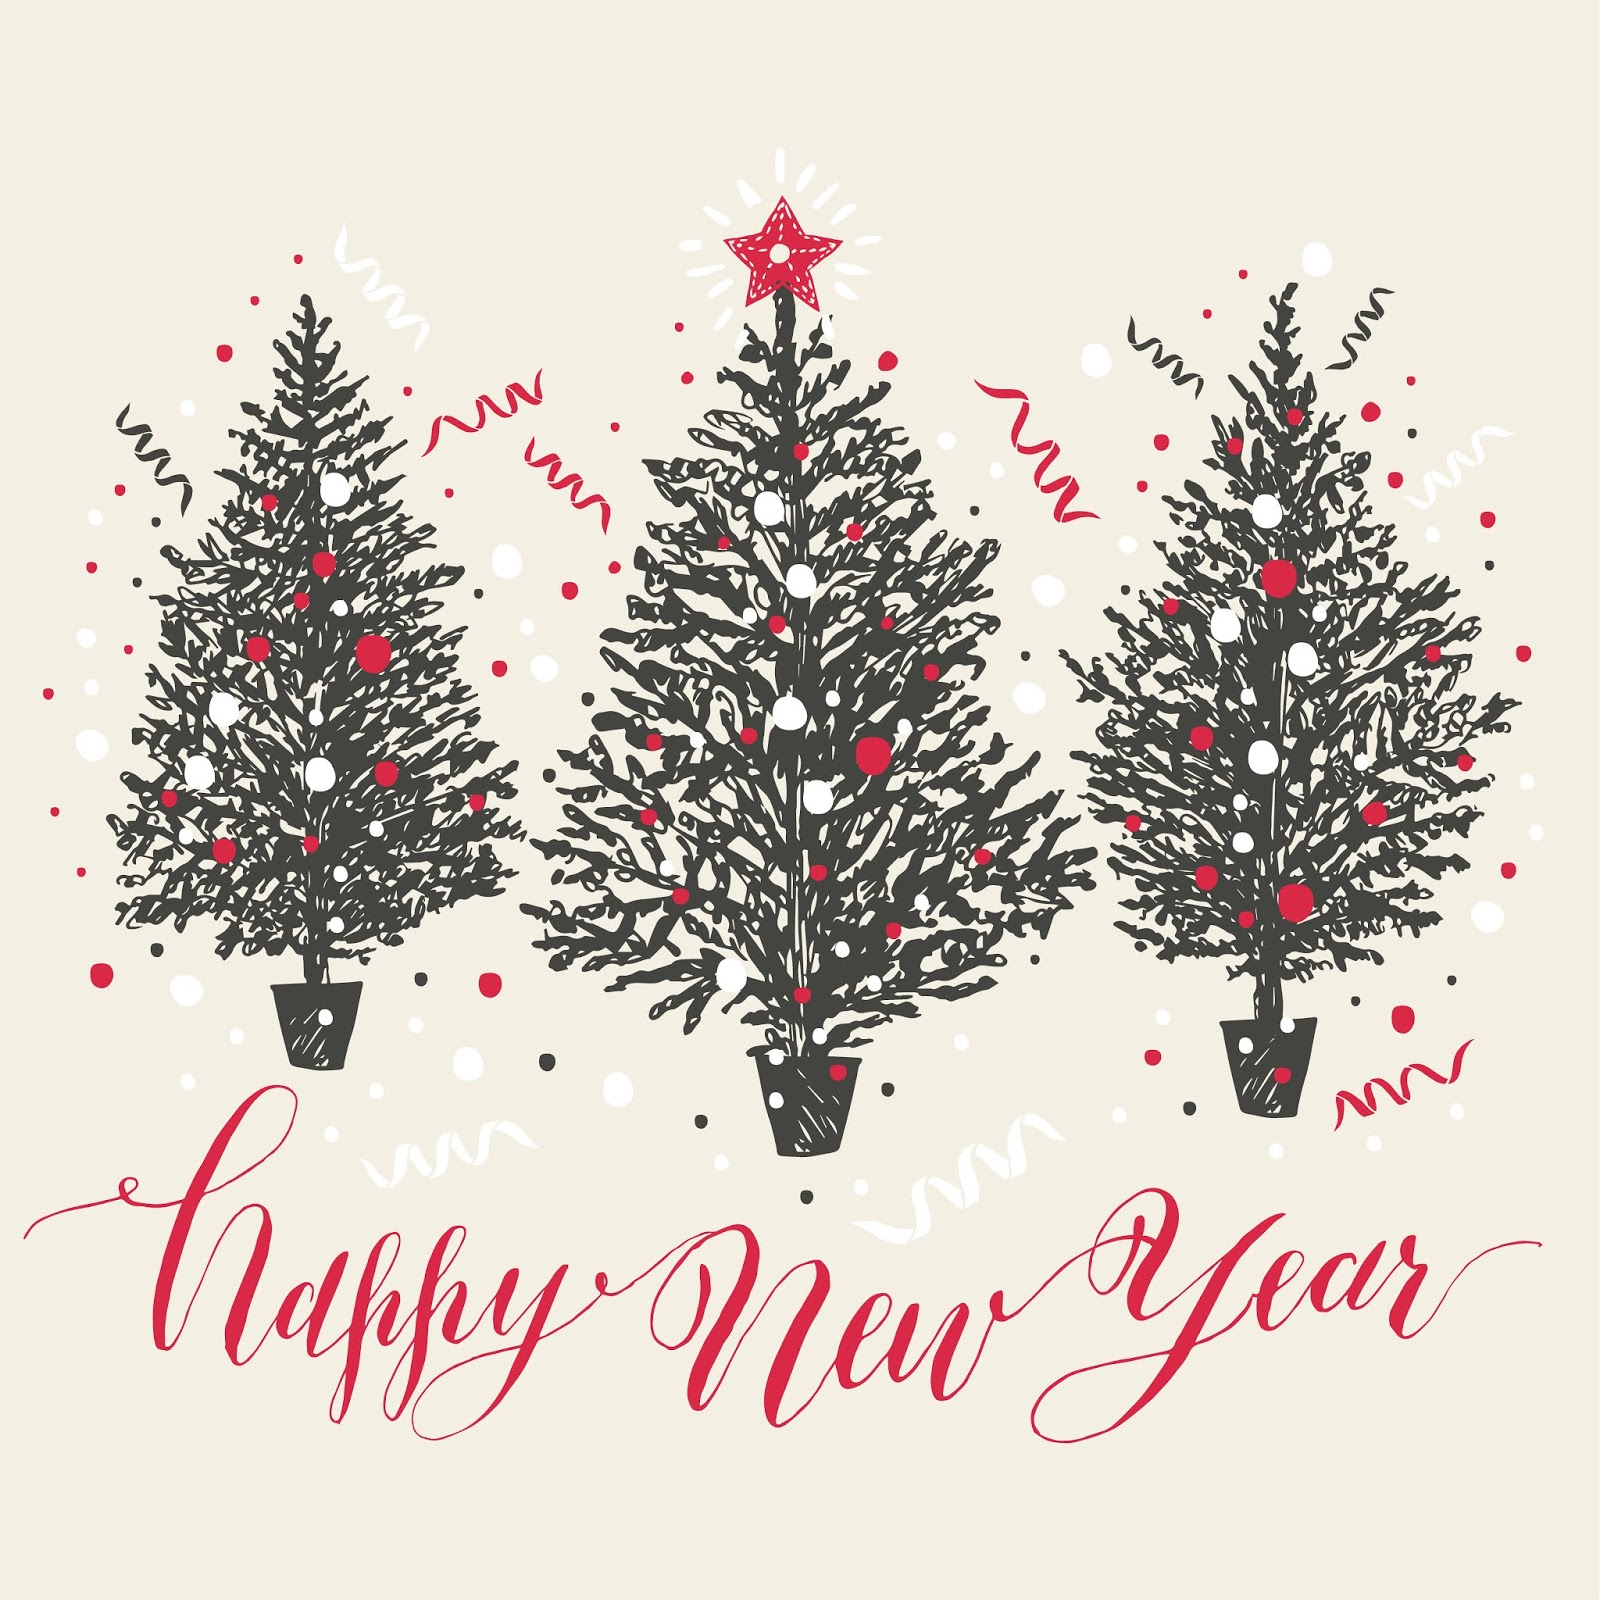 Hand Drawn Christmas Card New Year Trees With Snow Confetti Free Download Vector CDR, AI, EPS and PNG Formats